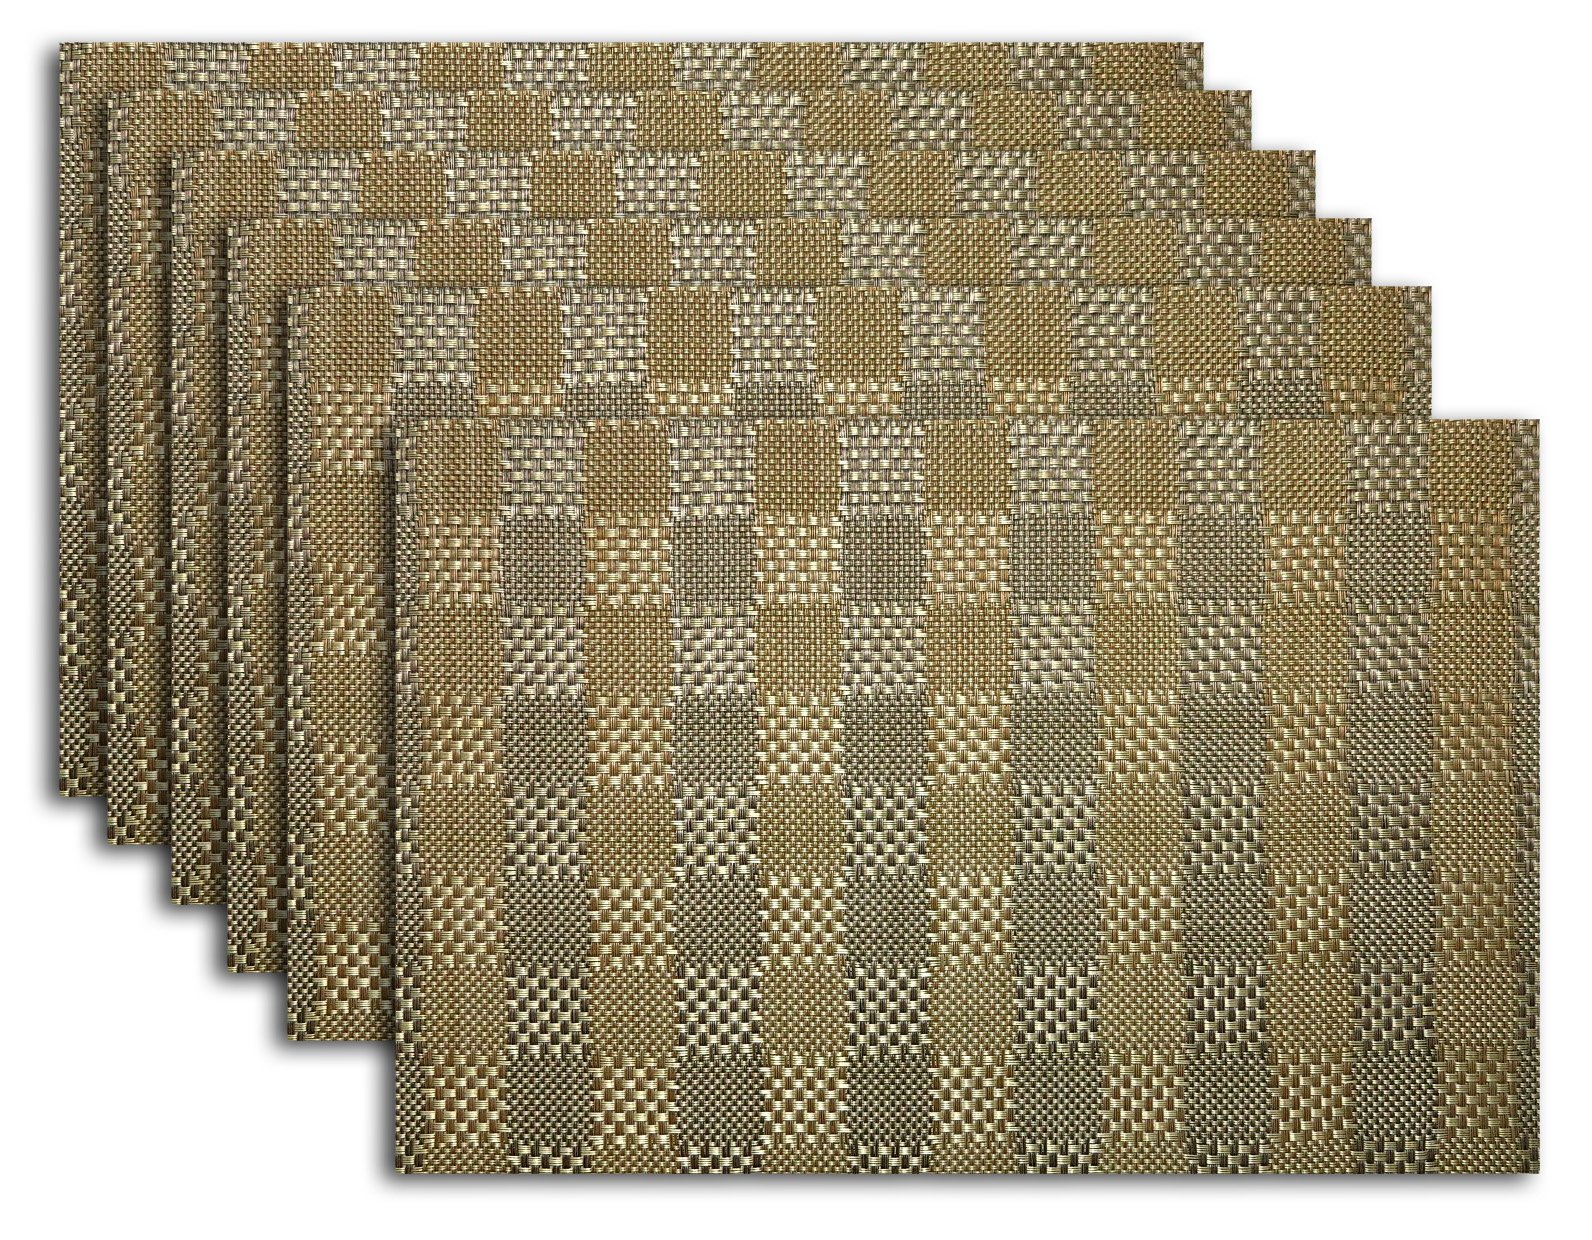 Placemat Set of 4/6 Reversible Square Check Plaid Style Kitchen Table Decor Woven Vinyl Table Placemats Set Home Dinner Decorative by Secret Life (6, Check Gold) - HOME UPGRADE - This woven placemat are most prefect and easy way to upgrade yours kitchen decor and kitchen set. These vinyl placemats are made of high grade vinyl, each piece die cut for precise edges. EASY STORAGE - 4 or 6 pieces table mat multiply to cover a 6' table dinner or larger. Each placemat are measured approx 1 millimeters, stack them together for easy and minimal storage space, lots of vibrant colors and pattern to easily change kitchen or dining room's decorative theme. IMPRESSIVE - They are beautiful made for outdoor and indoor use thanks to its water resistant super easy to clean fast drying features, imagine a patio party with these lovely placemats on the table would impress all those guests, not to mention spill s and stains just wipe right up. - placemats, kitchen-dining-room-table-linens, kitchen-dining-room - 91xRwJtv3UL -